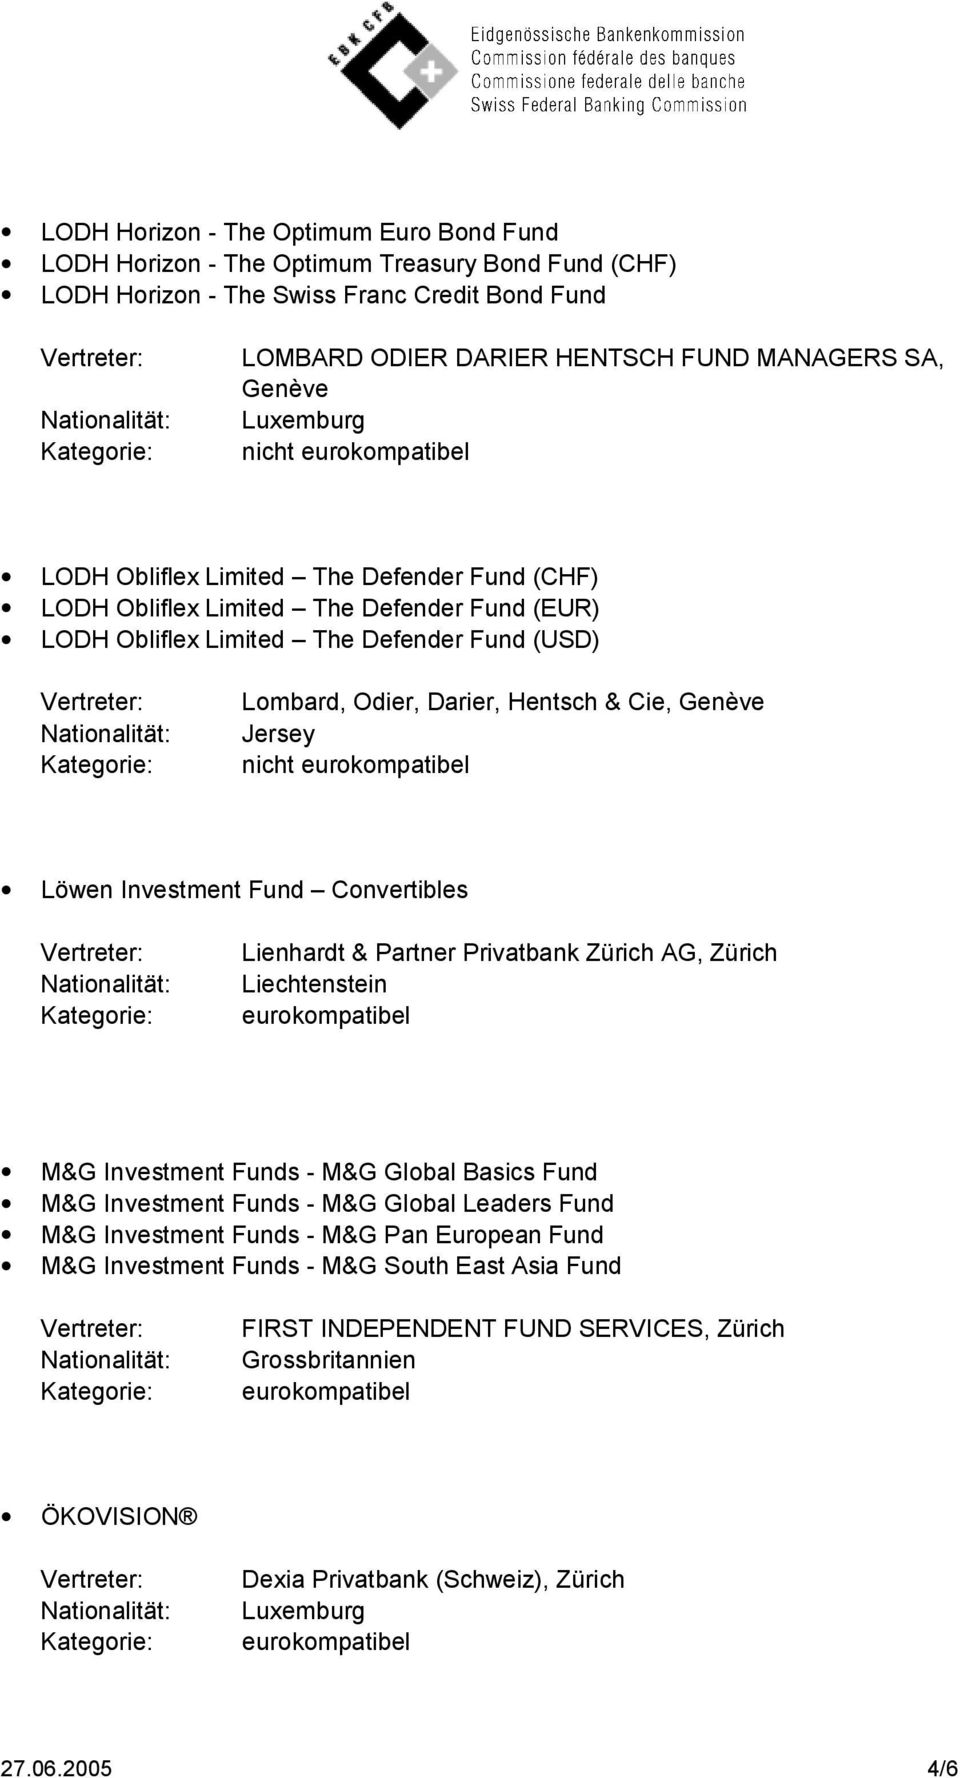 nicht Löwen Investment Fund Convertibles Lienhardt & Partner Privatbank Zürich AG, Zürich Liechtenstein M&G Investment Funds - M&G Global Basics Fund M&G Investment Funds - M&G Global Leaders Fund